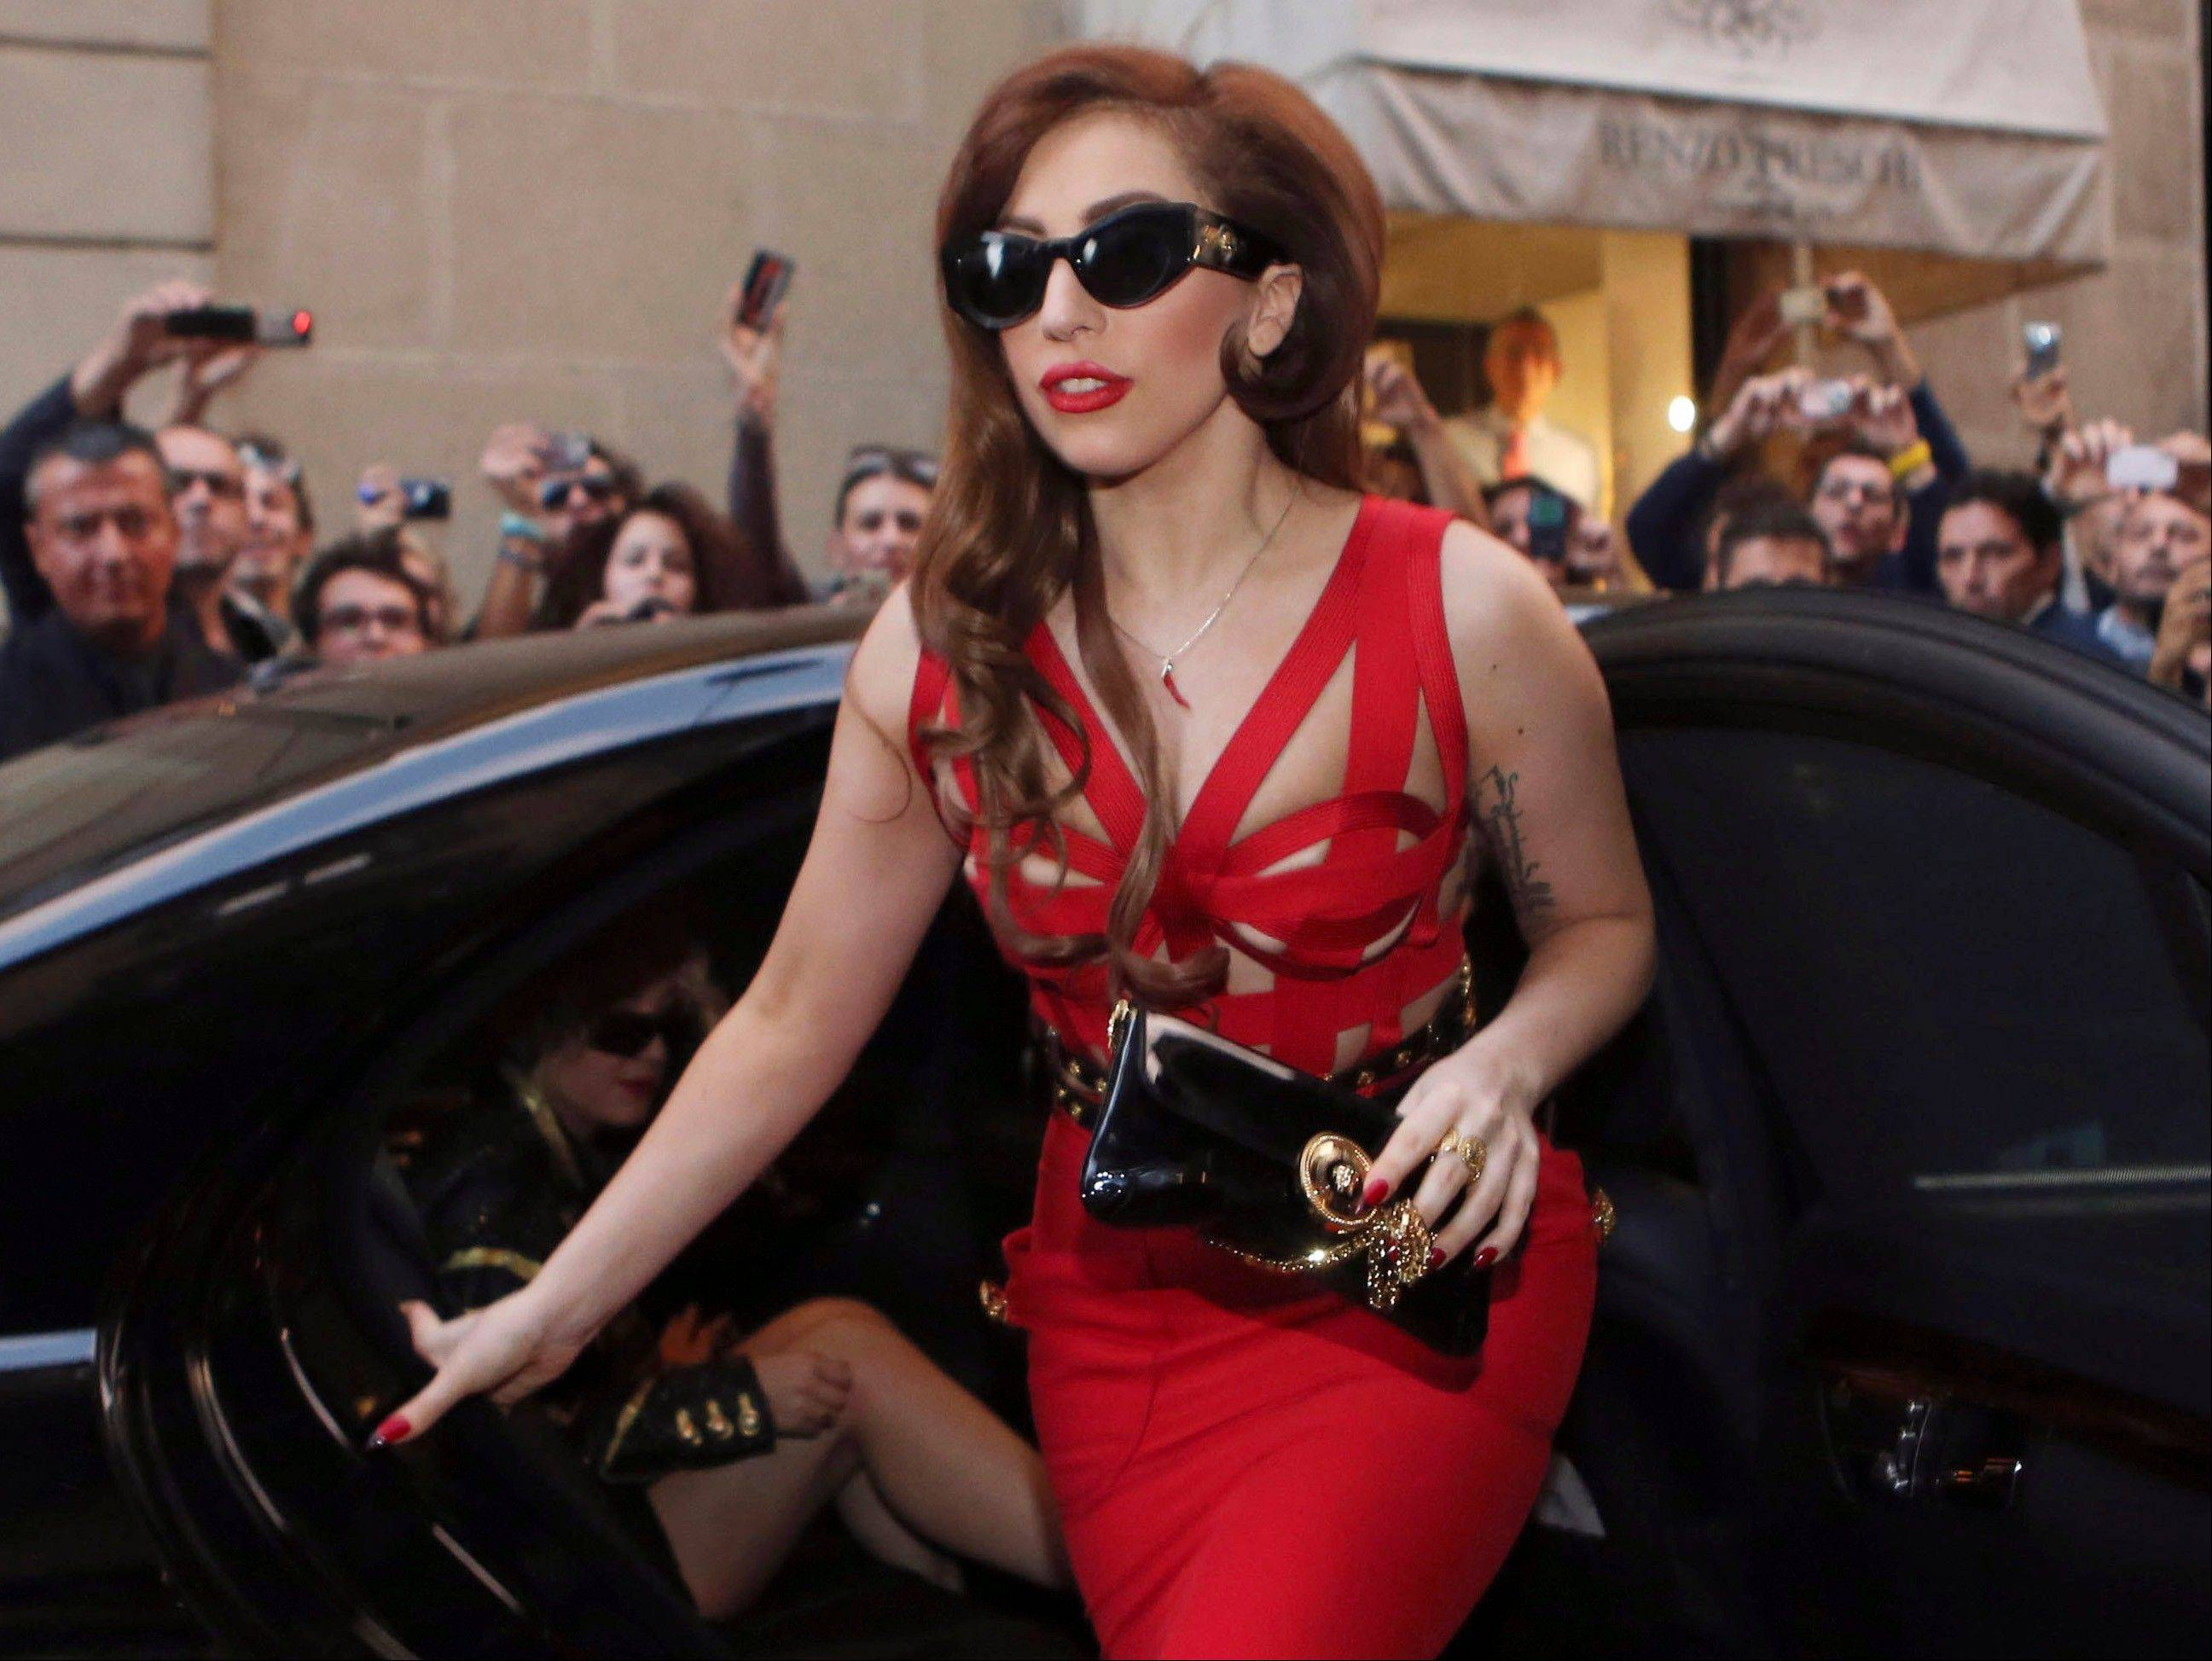 Lady Gaga posted on her blog late Wednesday that she had hip surgery. She canceled her �Born This Way Ball� tour last week.